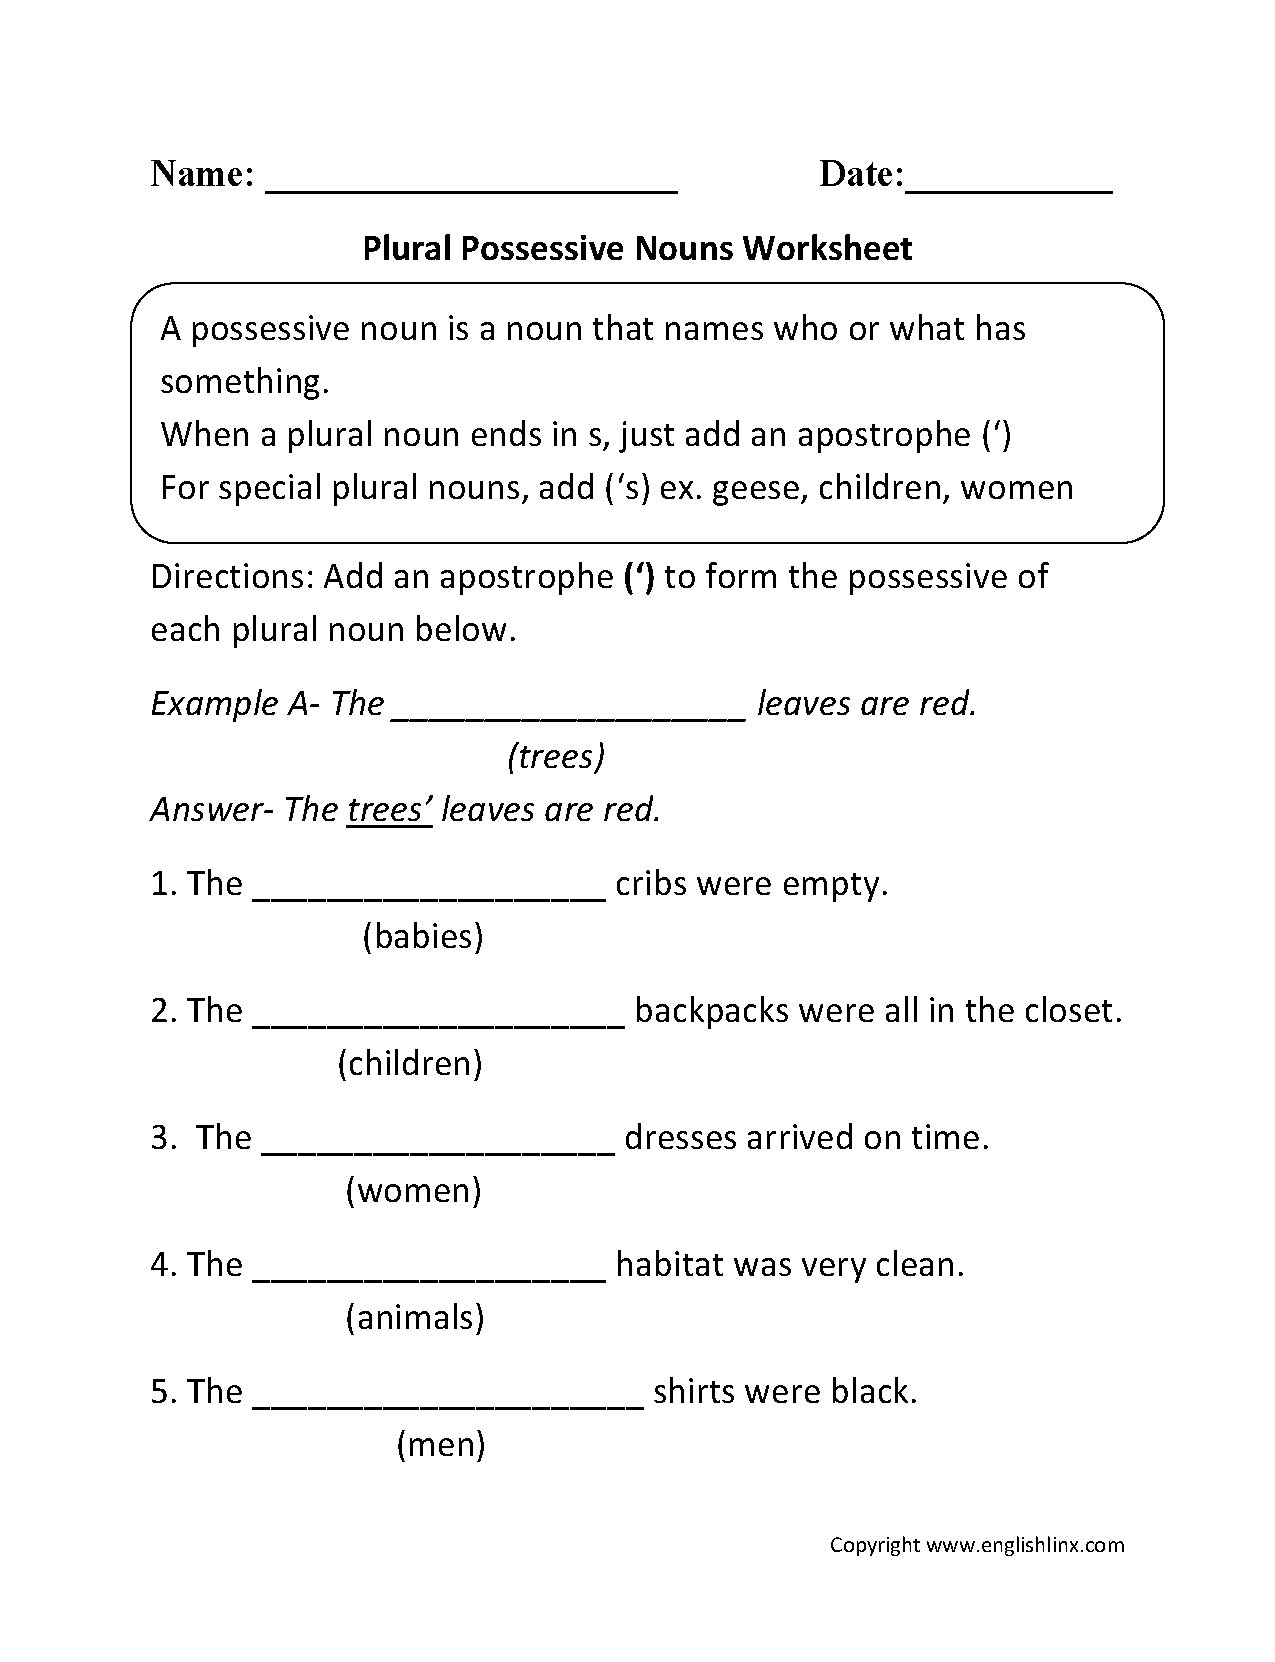 Aldiablosus  Personable Nouns Worksheets  Possessive Nouns Worksheets With Likable Possessive Nouns Worksheets With Alluring Cash Flow Worksheet Template Also Basic Esl Worksheets In Addition Letter G Worksheets For Preschoolers And Ell Word Family Worksheets As Well As Math Coordinate Plane Worksheets Additionally Telling Time To Five Minutes Worksheet From Englishlinxcom With Aldiablosus  Likable Nouns Worksheets  Possessive Nouns Worksheets With Alluring Possessive Nouns Worksheets And Personable Cash Flow Worksheet Template Also Basic Esl Worksheets In Addition Letter G Worksheets For Preschoolers From Englishlinxcom